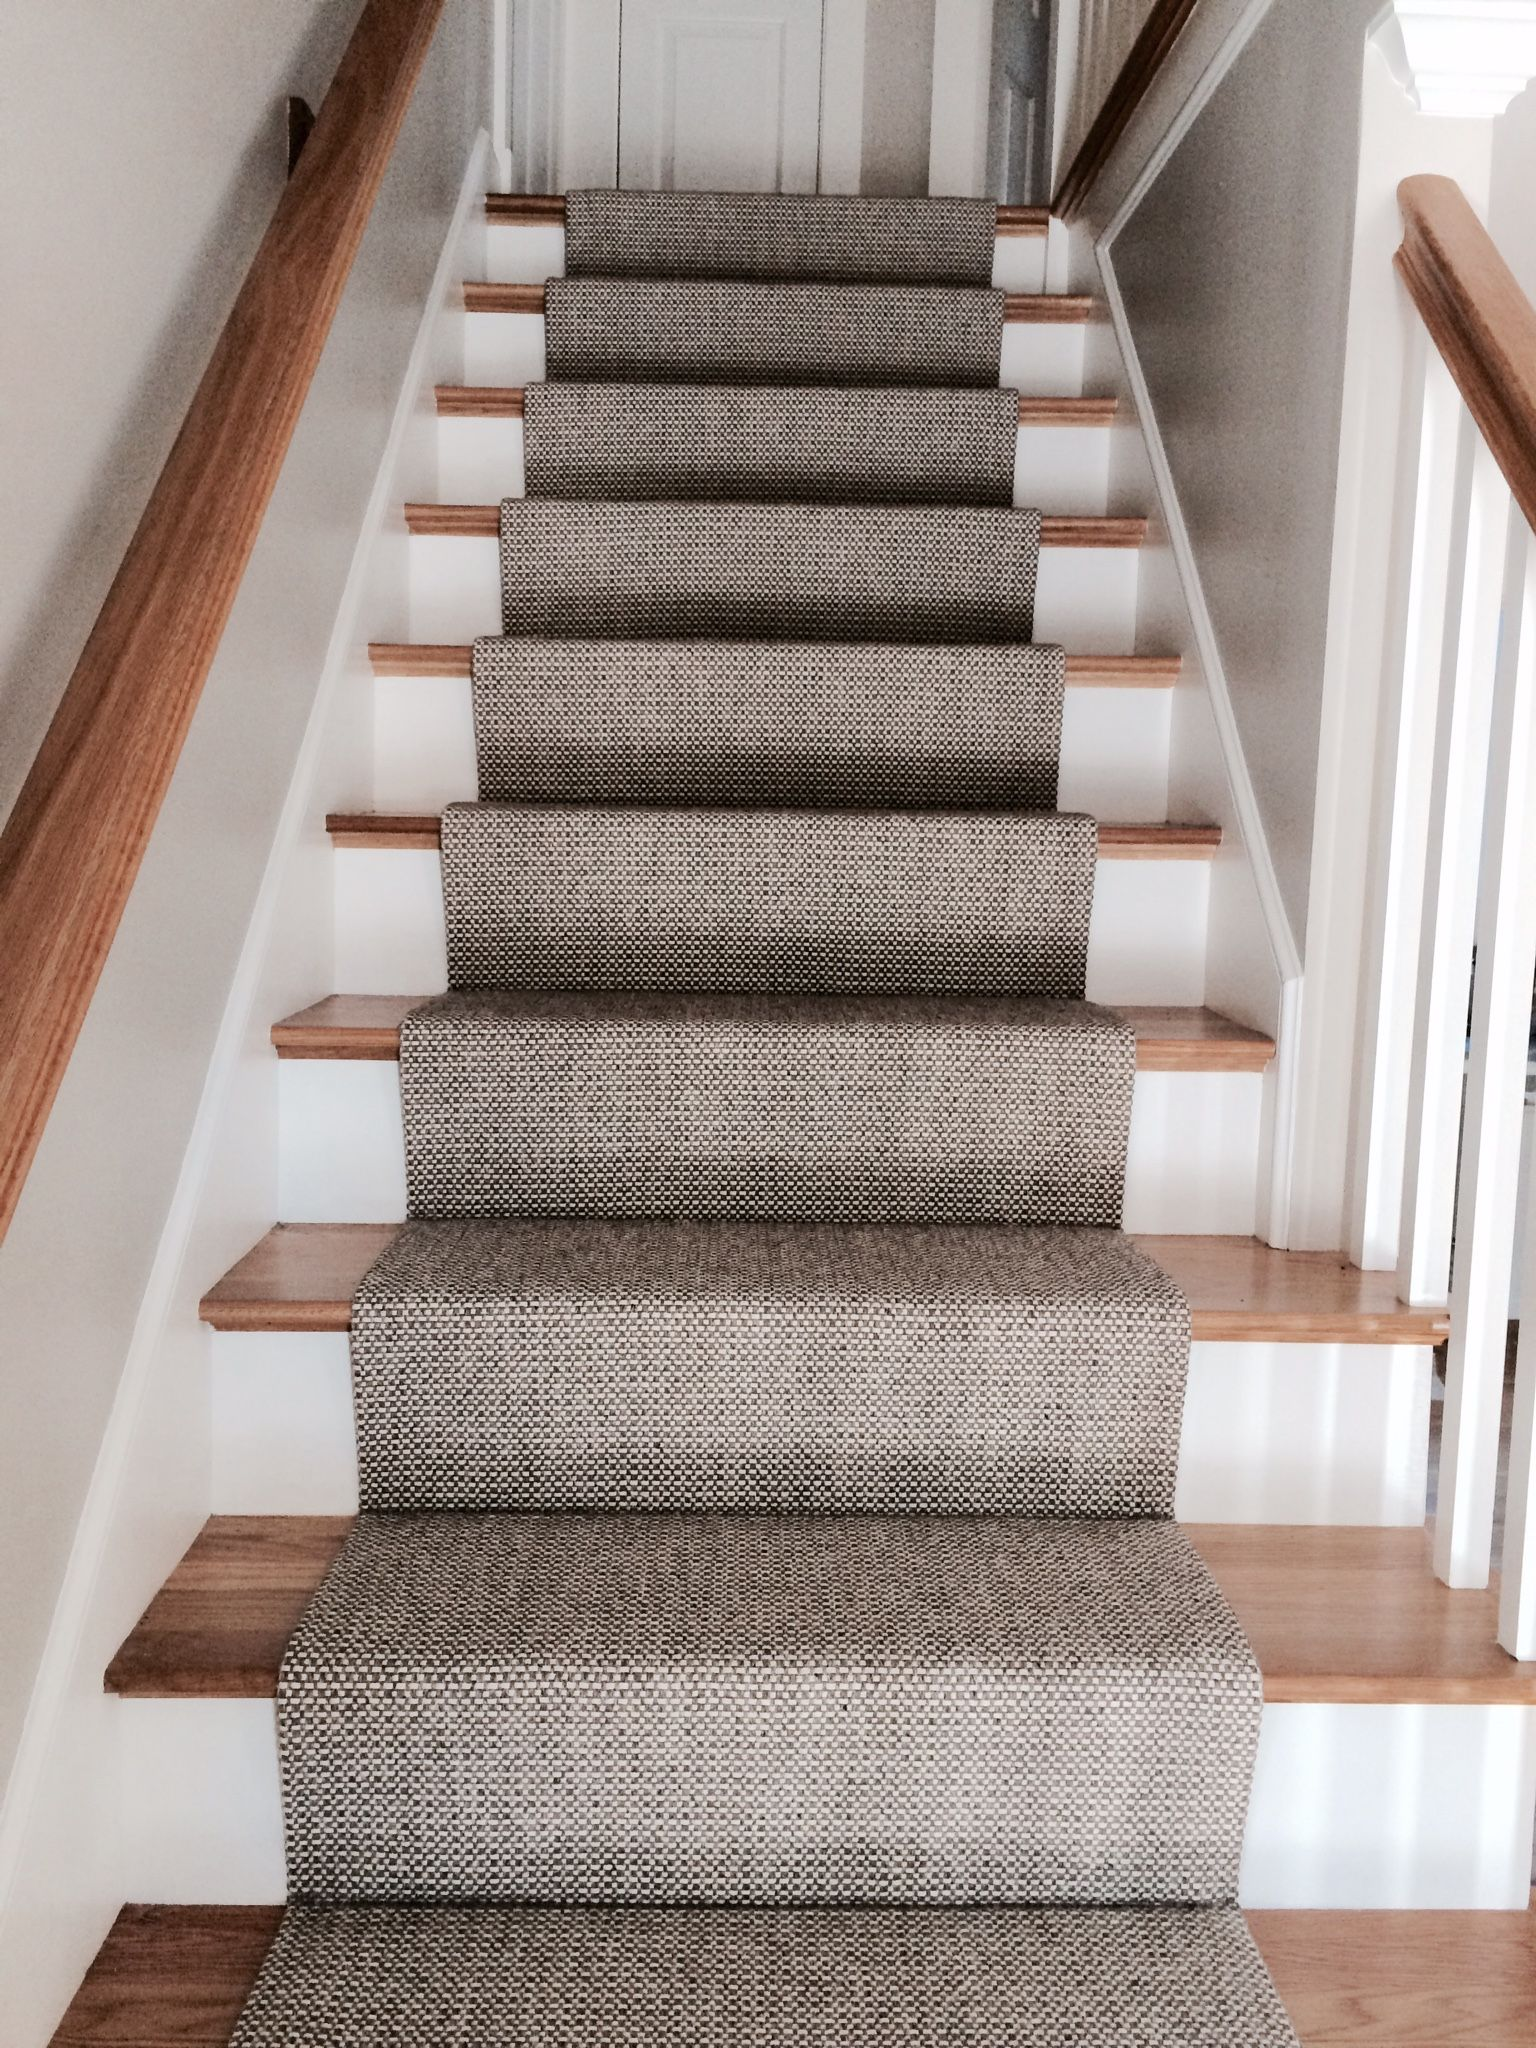 Carpet stairs woven wool stair runner that we fabricated using a fold and stitch method PJXPADP